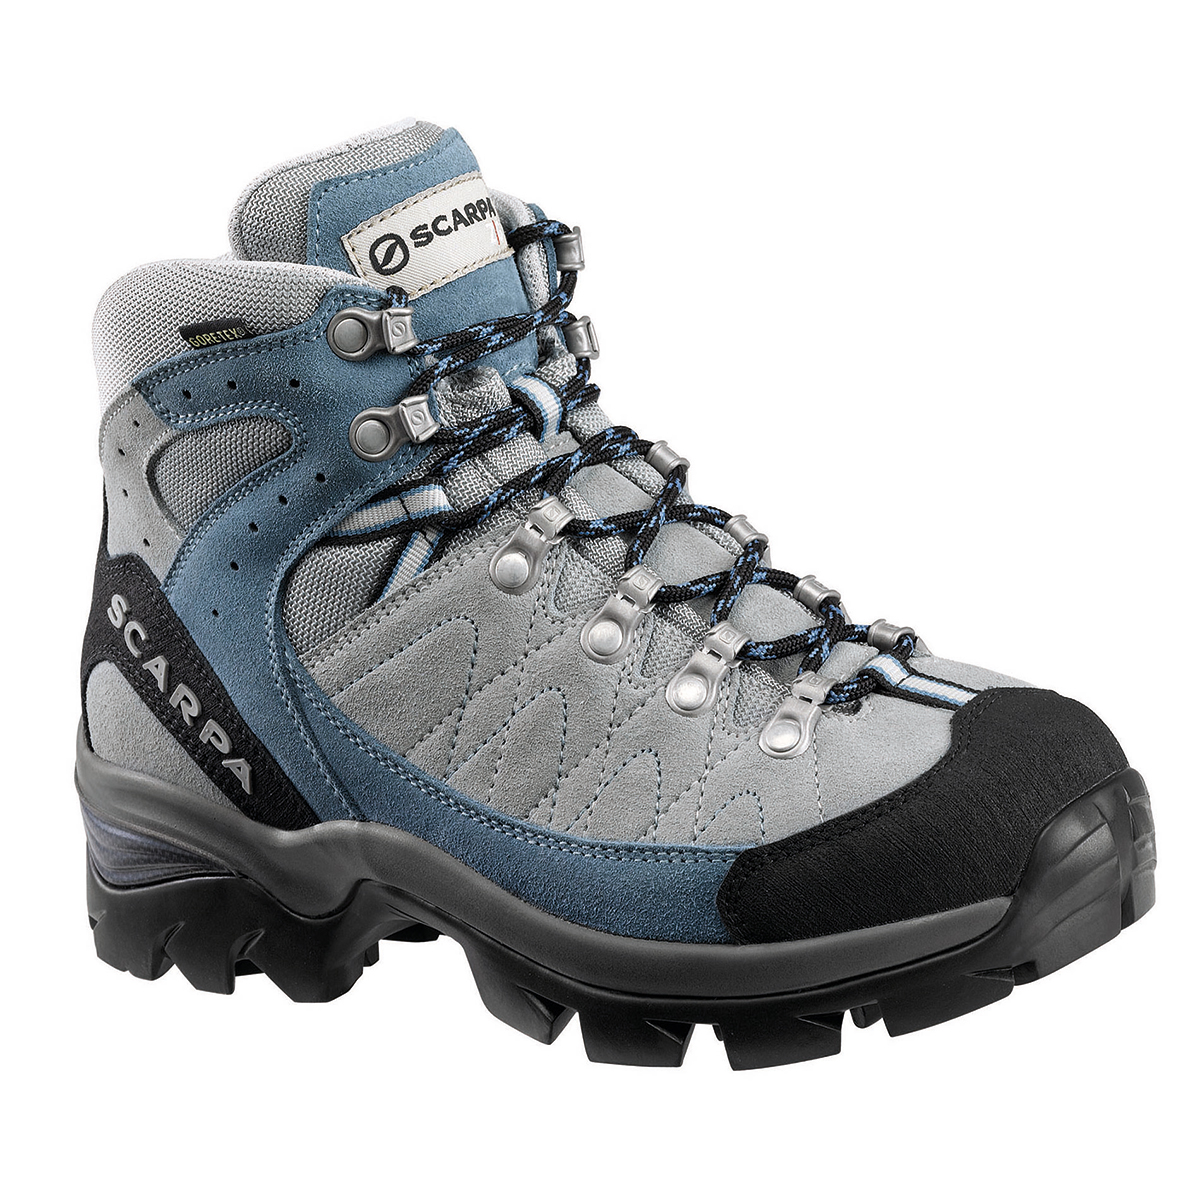 【OUTLET】カイラッシュGTX WMN